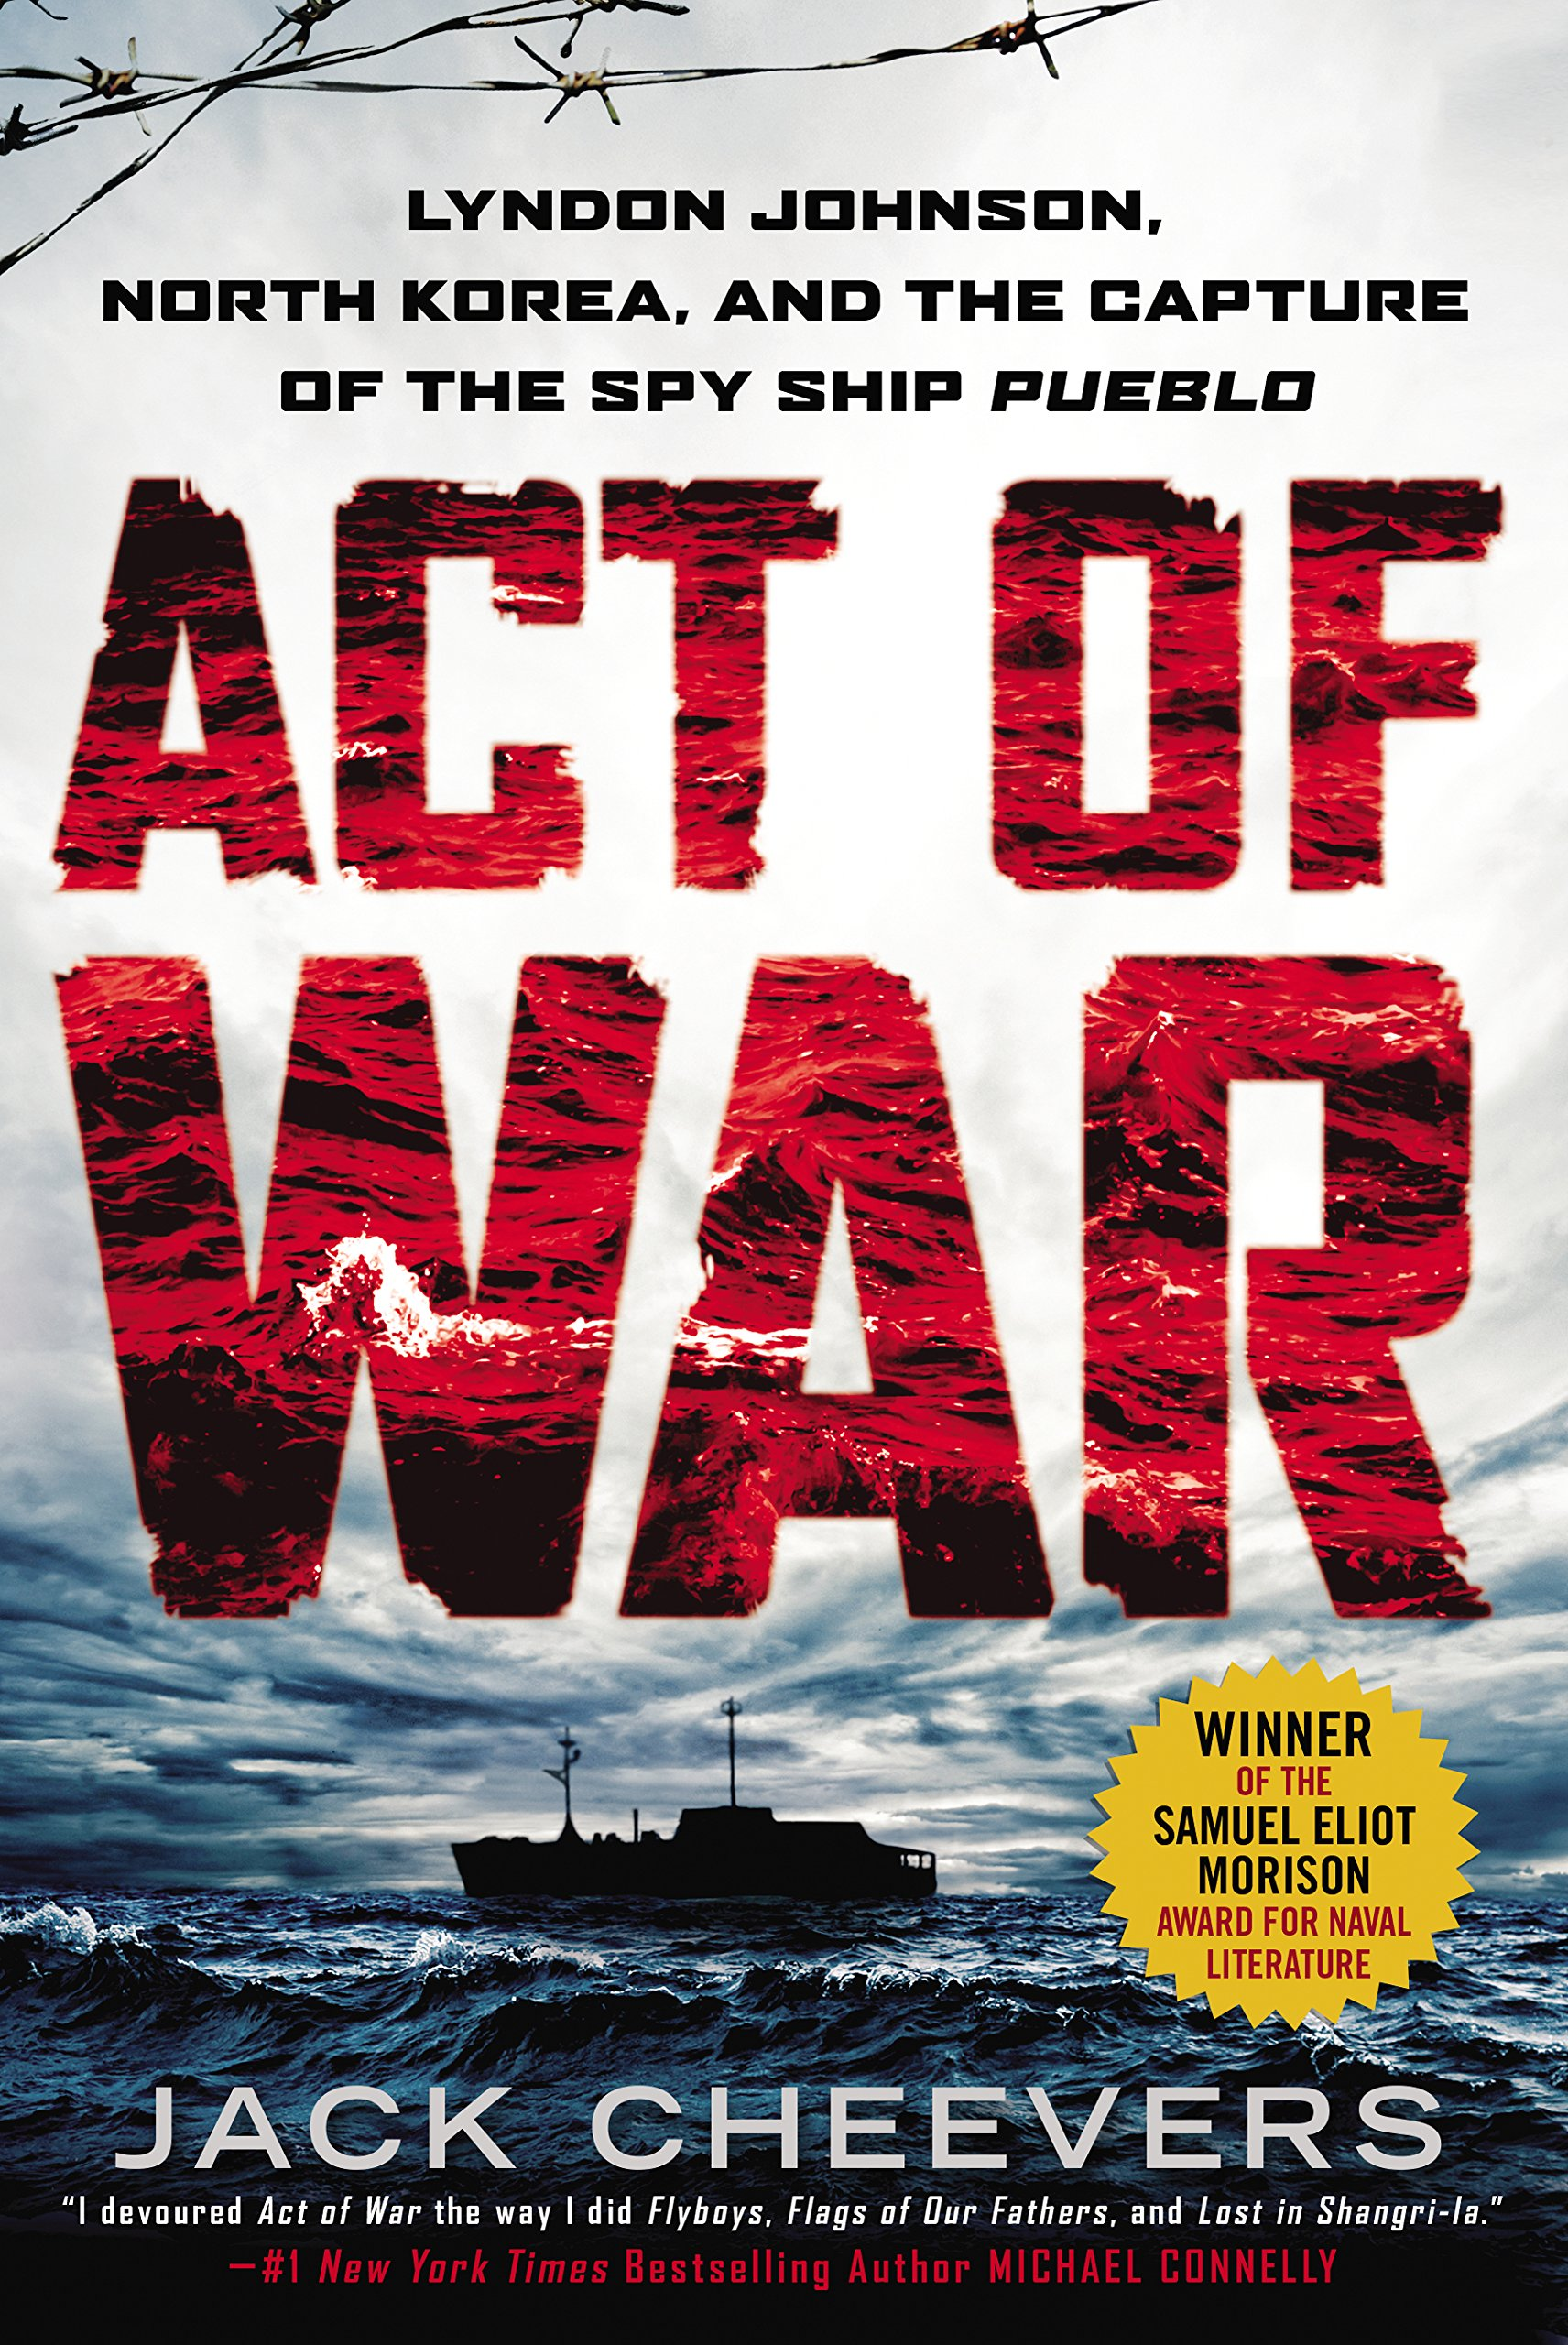 Act Of War: Lyndon Johnson, North Korea, And The Capture Of The Spy Ship  Pueblo: Jack Cheevers: 9780451466204: Amazon: Books